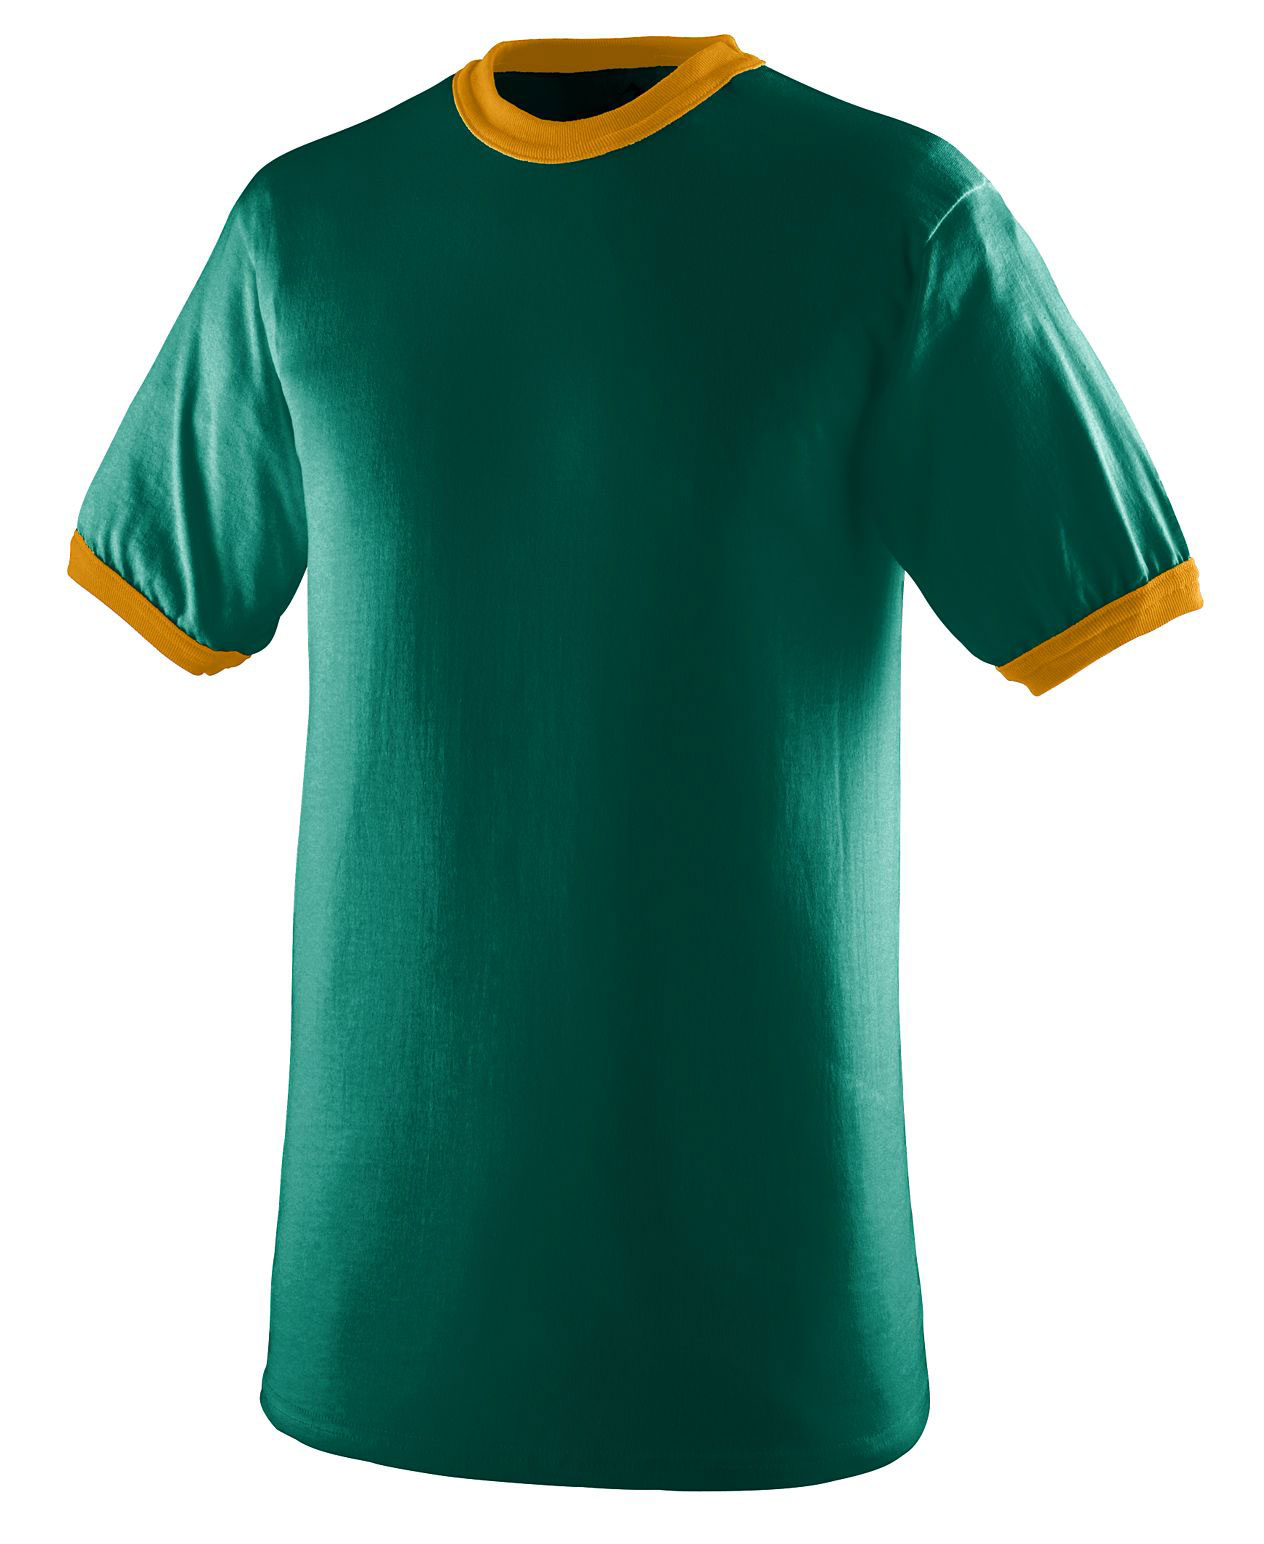 Augusta Youth Ringer T-Shirt